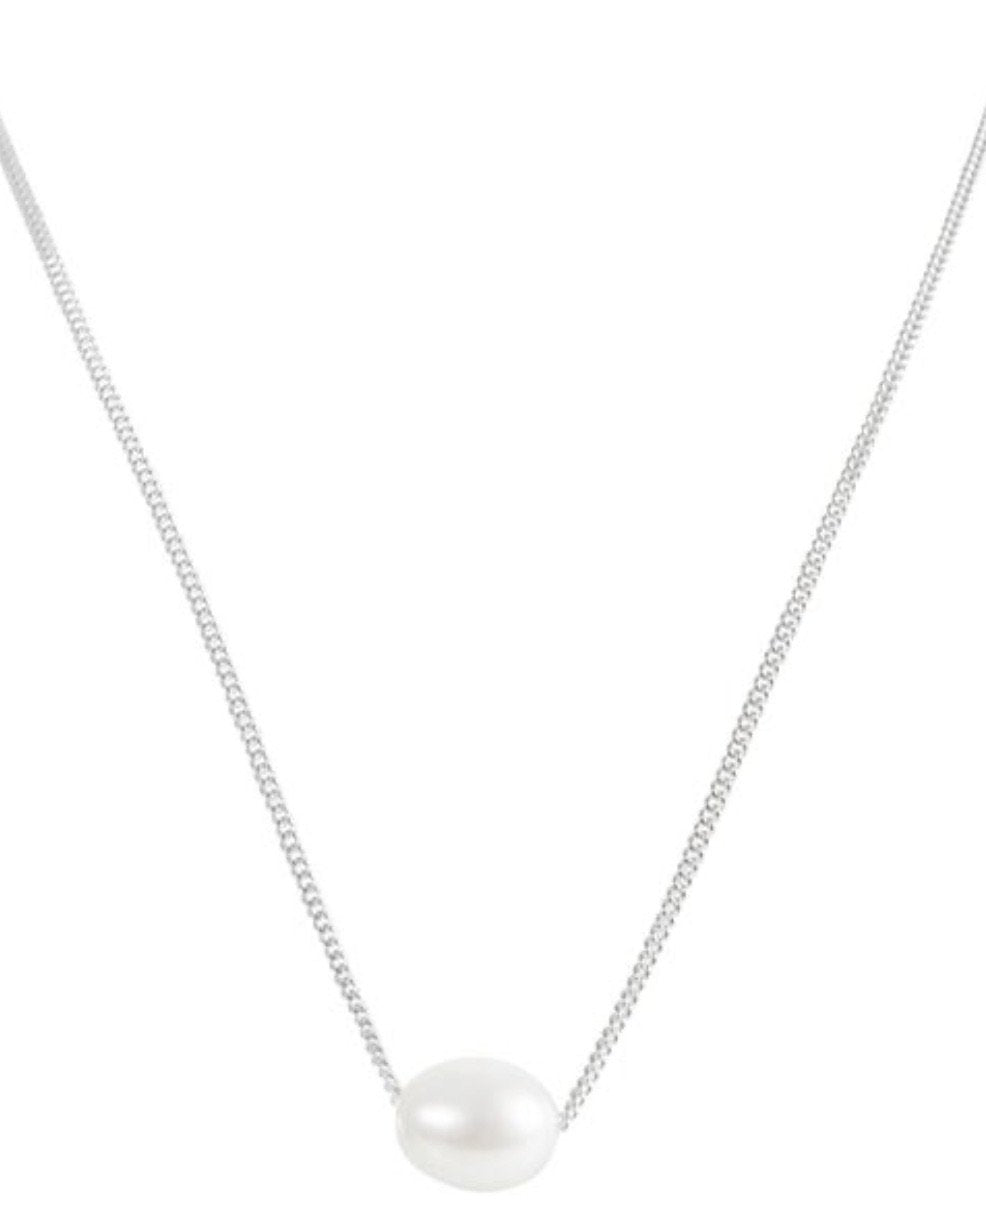 Silver Pearl Teardrop Necklace by Fairley